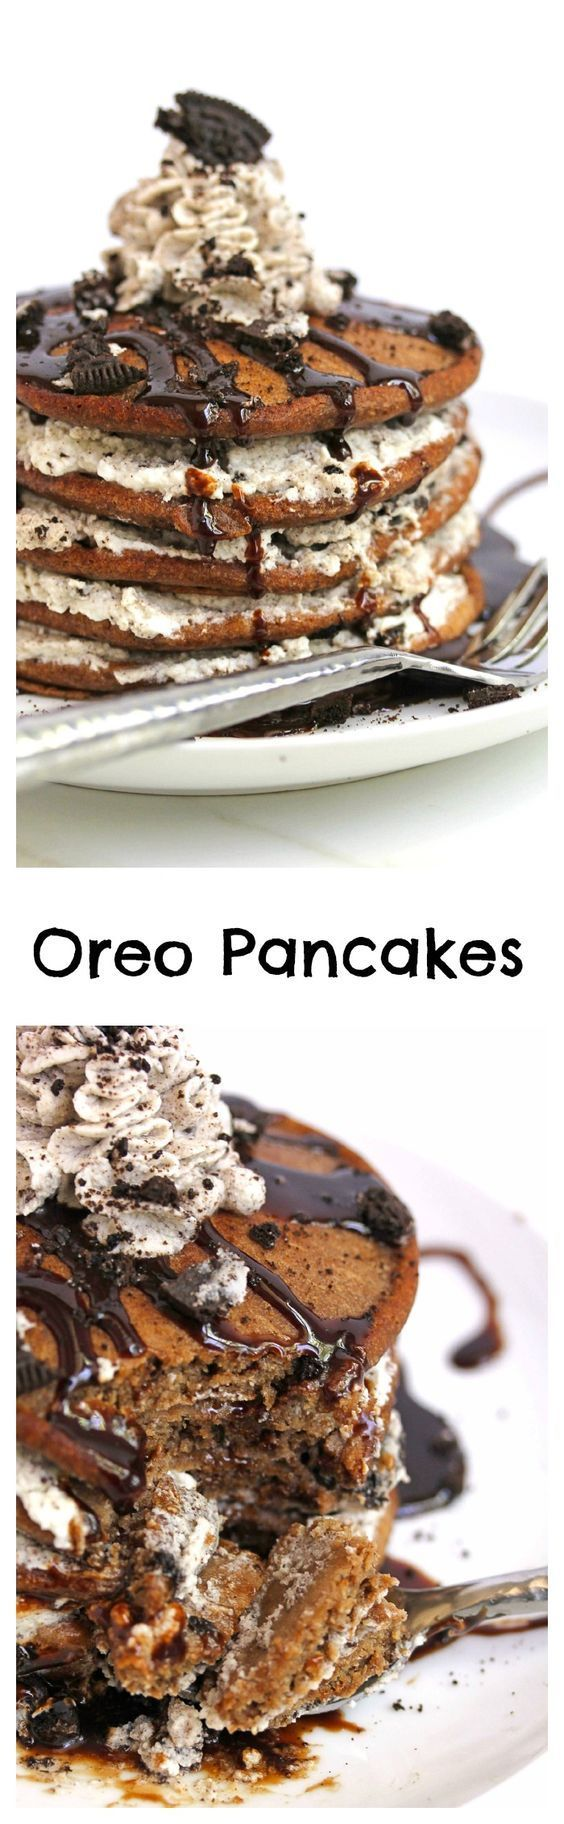 Oreo Pancakes, perfect for Valentines Day morning